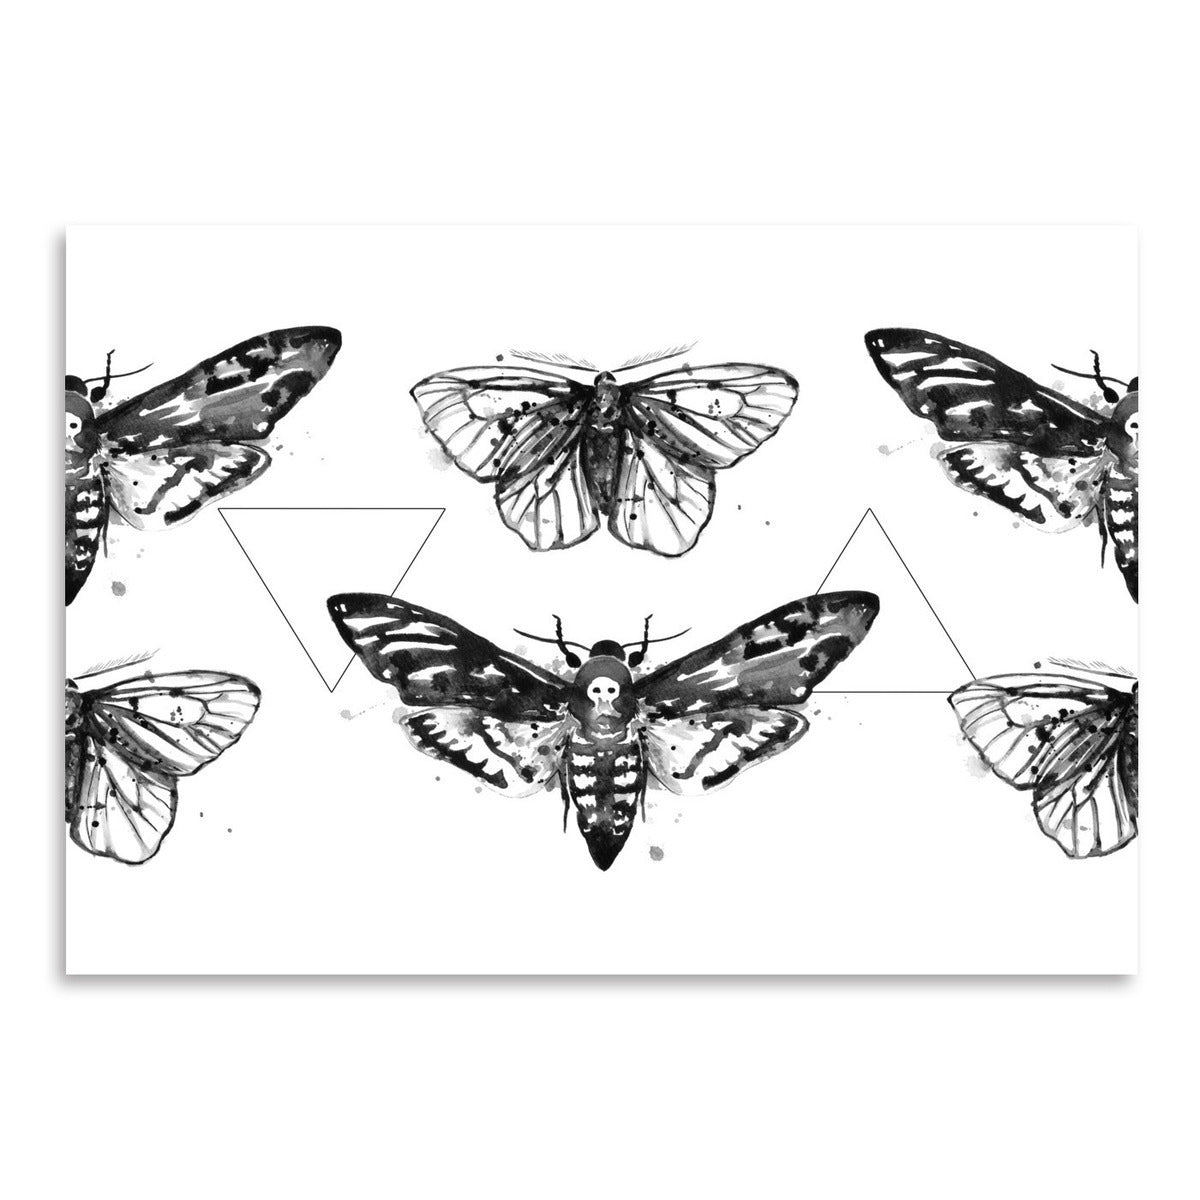 Geometric Moths Repeat Tile by Sam Nagel Art Print - Art Print - Americanflat